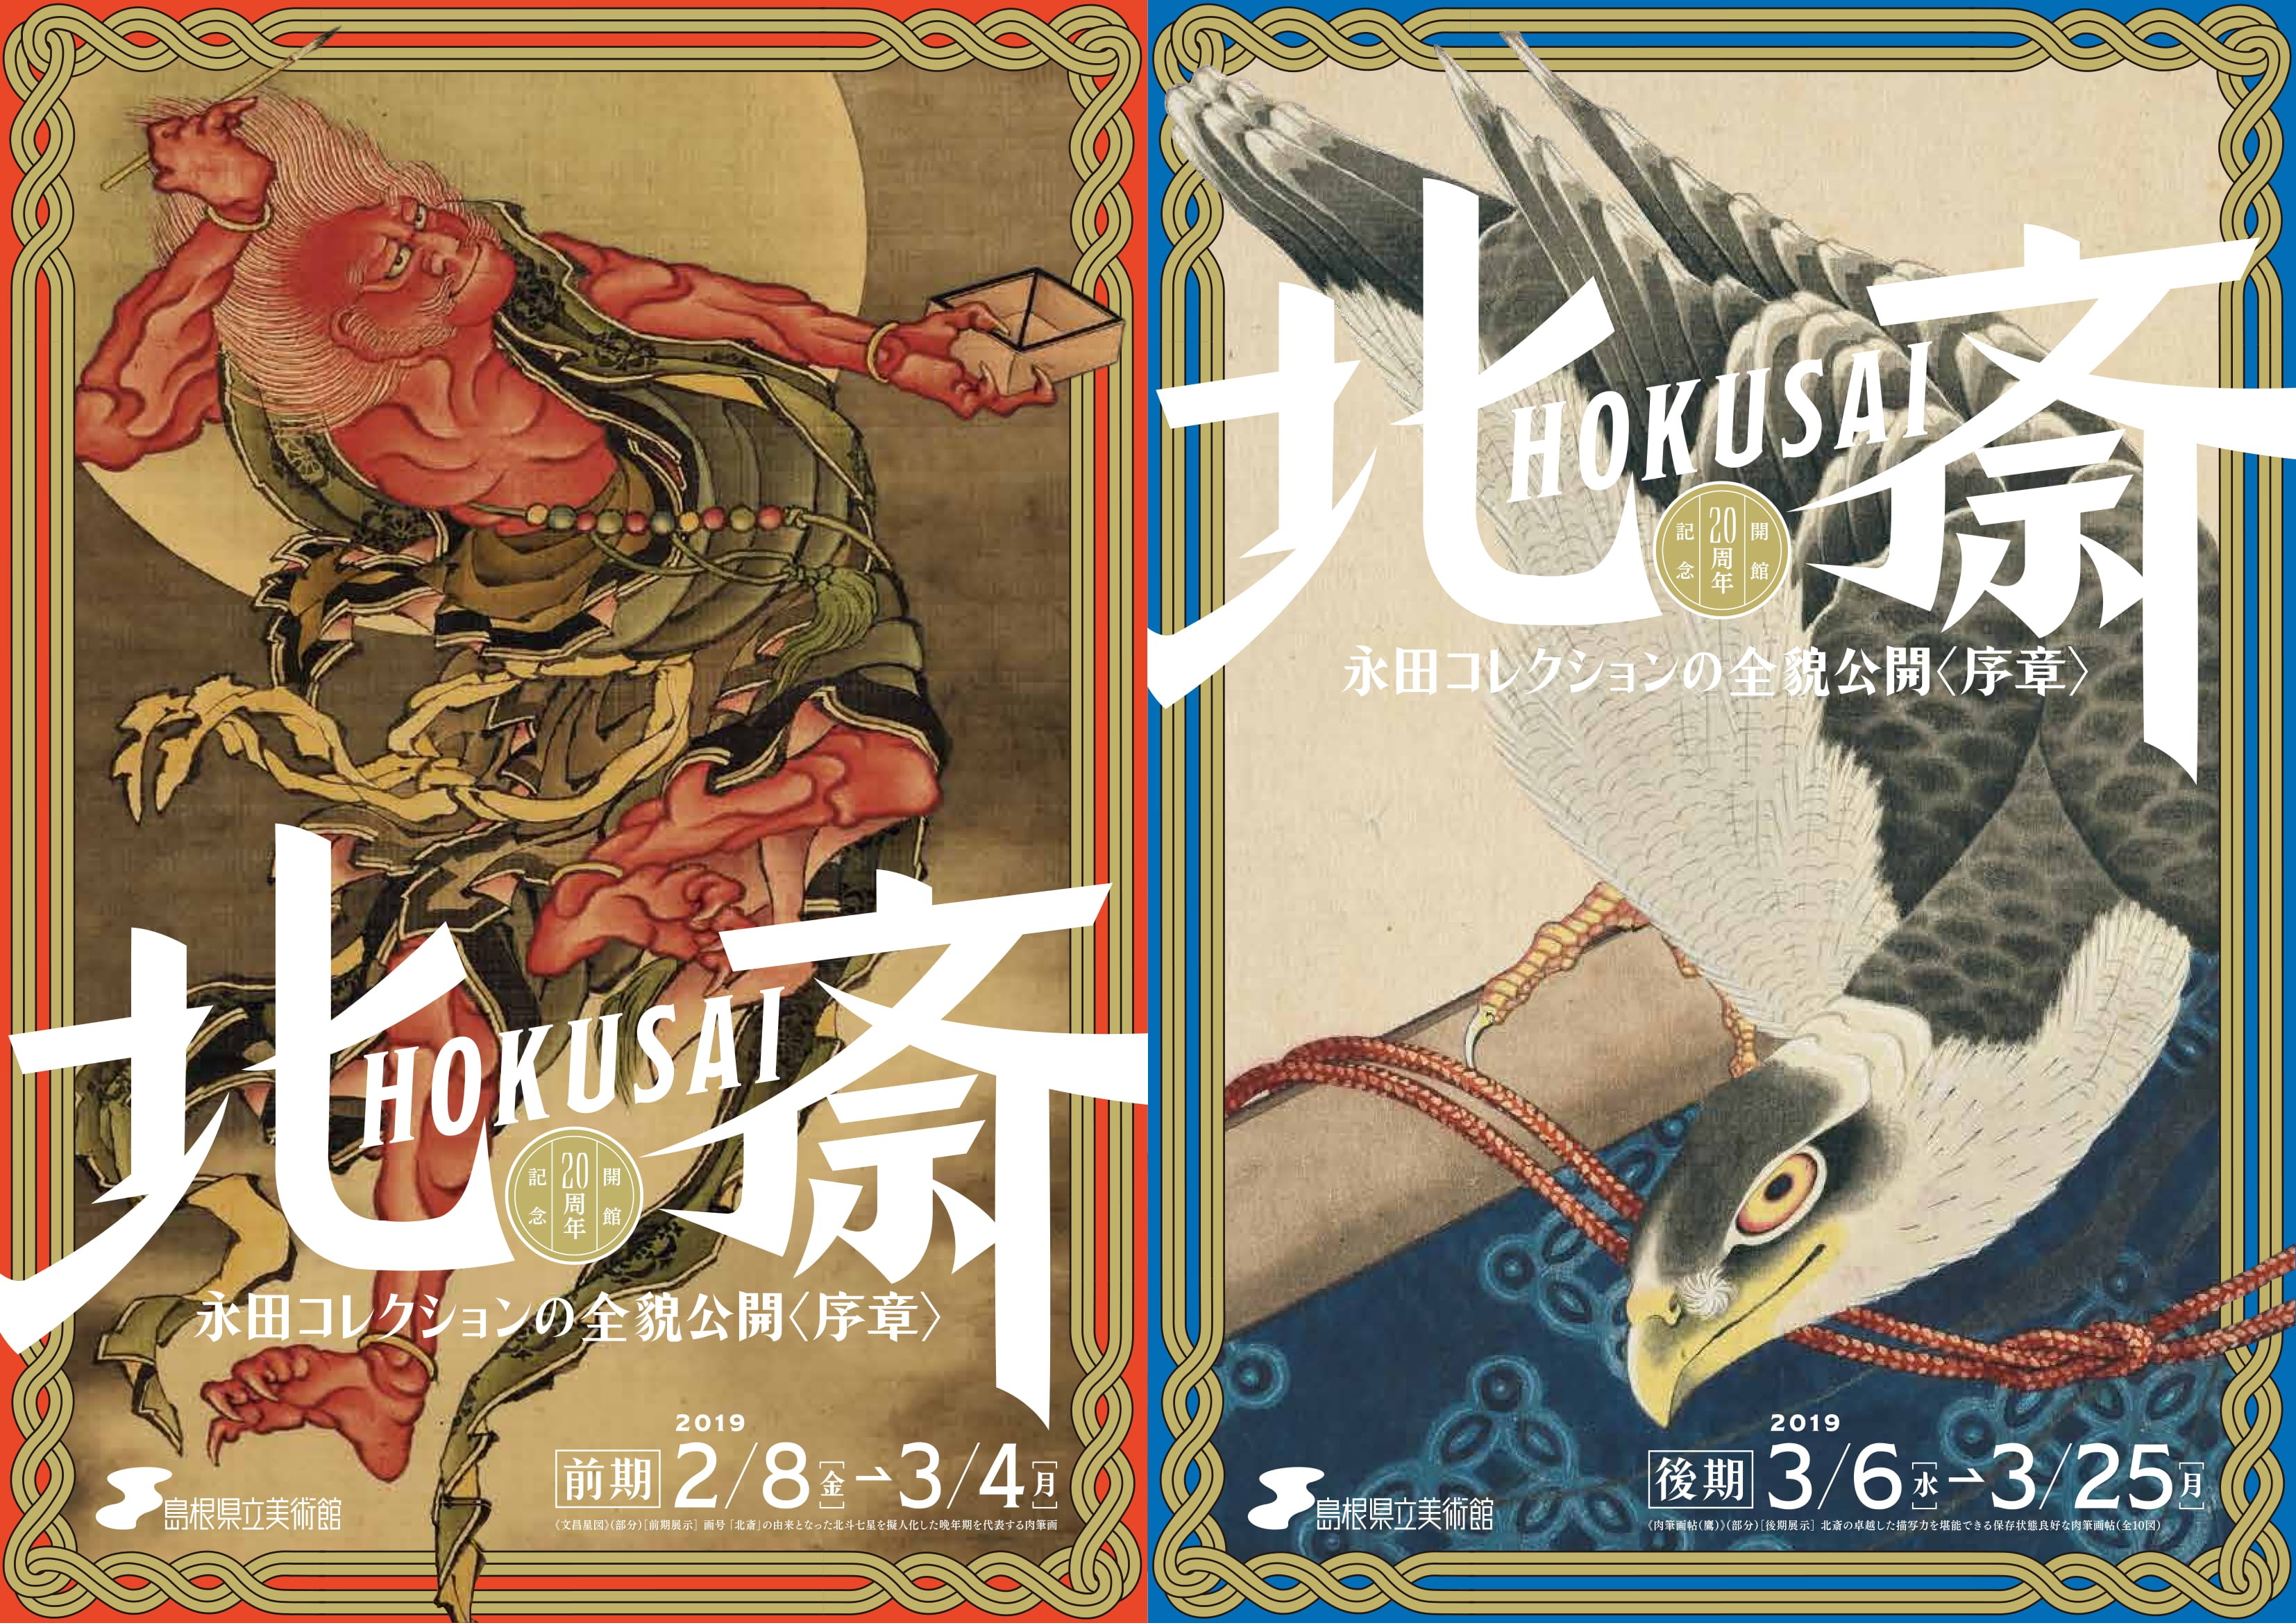 Hokusai Collection Flyer (front)